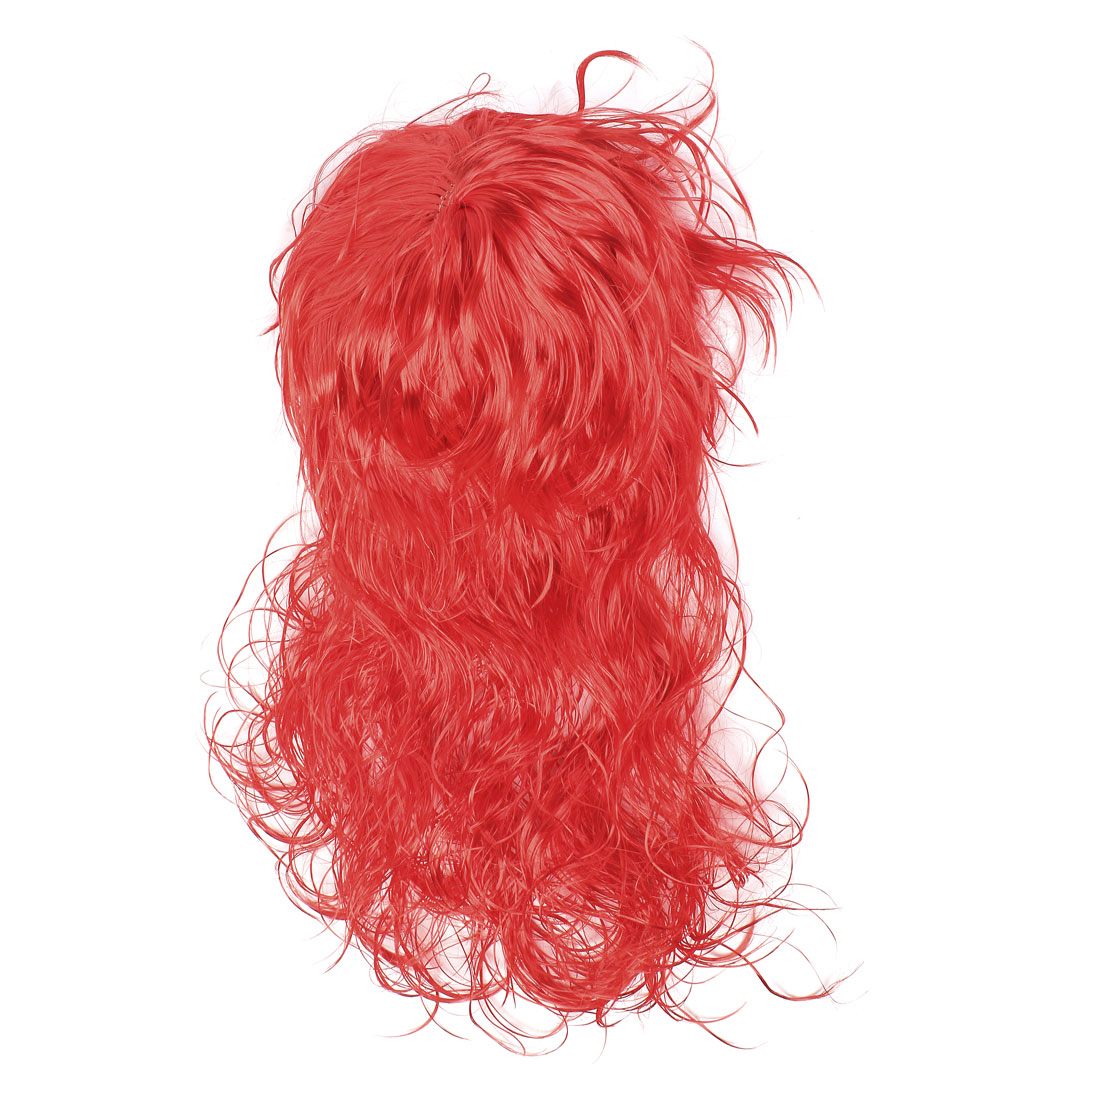 Costume Party Cosplay Red Long Curly Hair Wig Hairpiece with Bangs